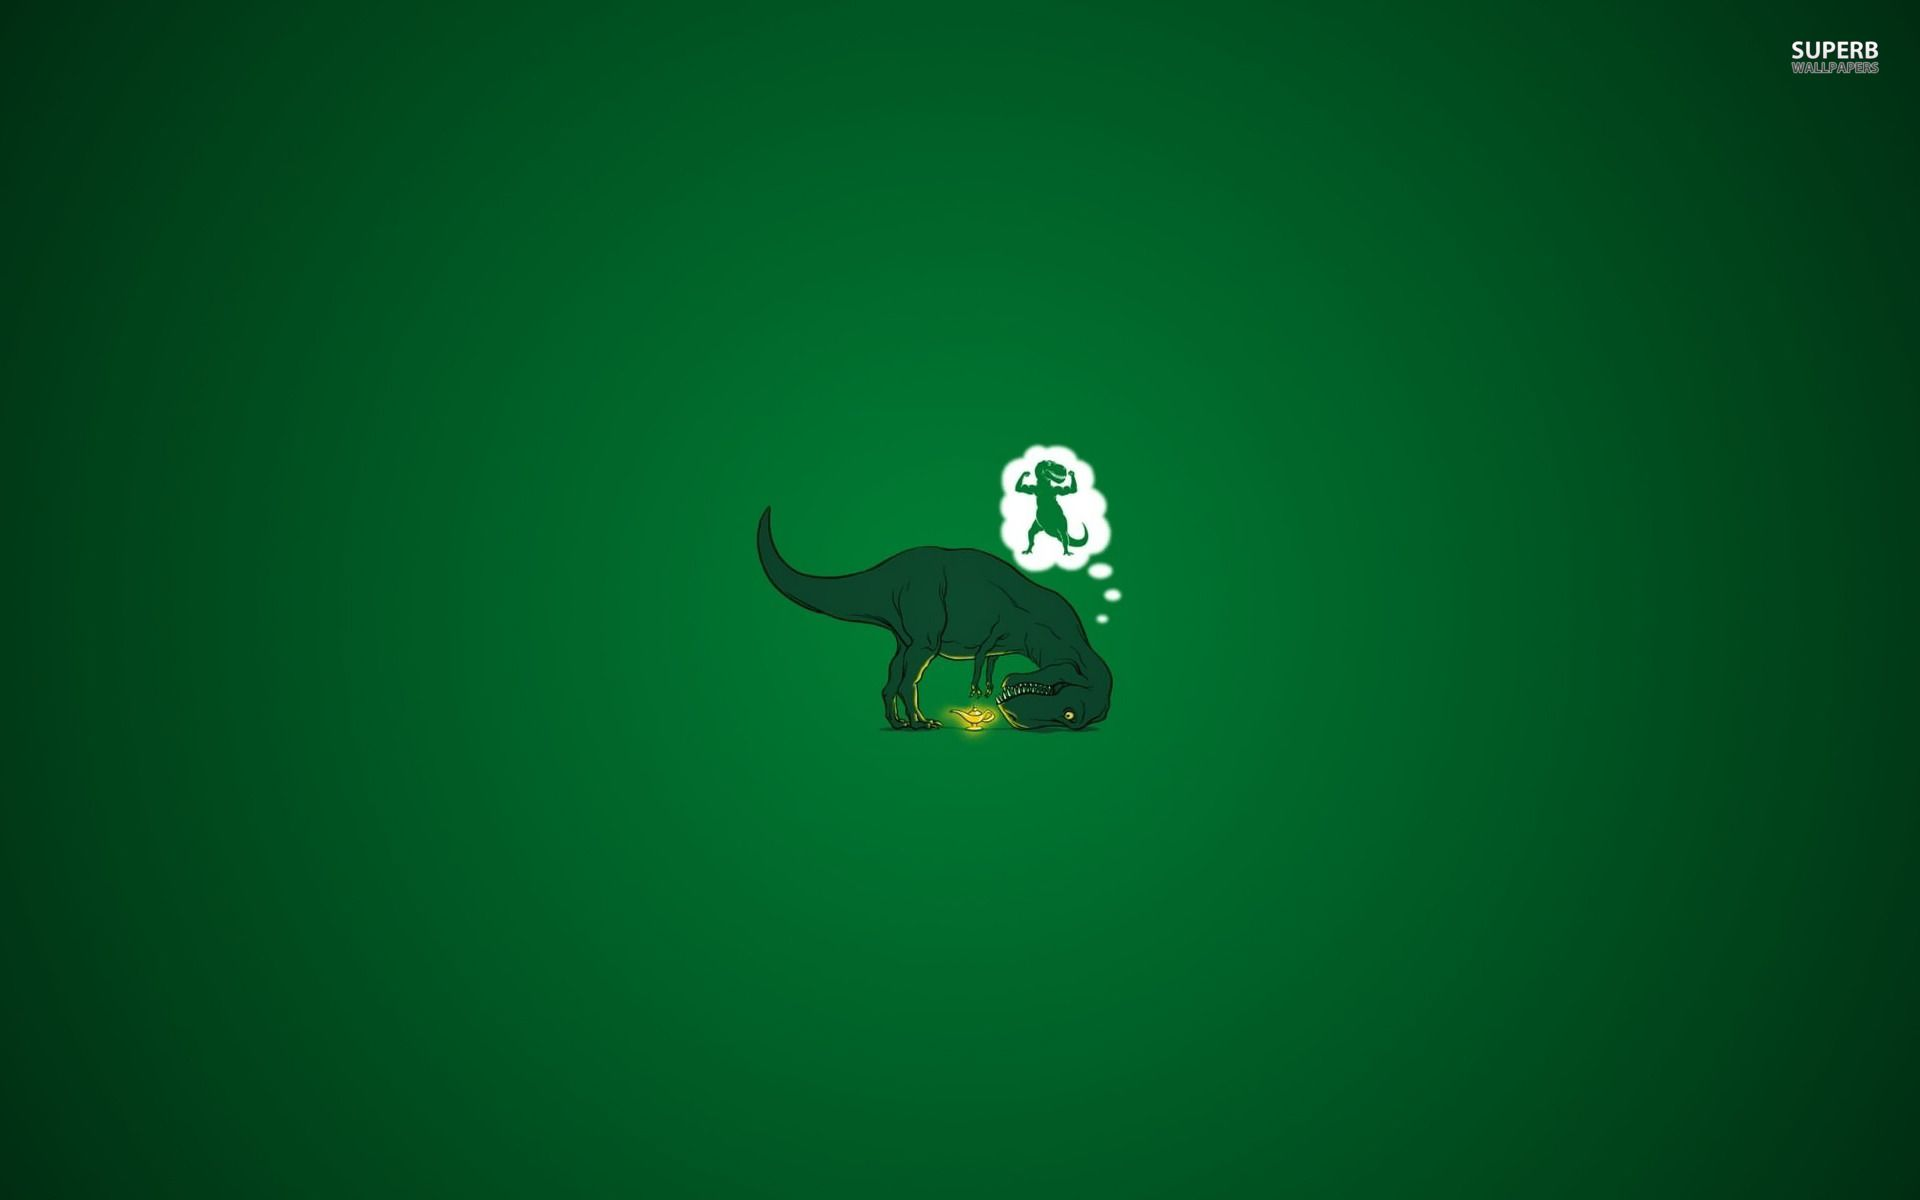 Cute Dino Wallpaper for Pinterest 1920x1200